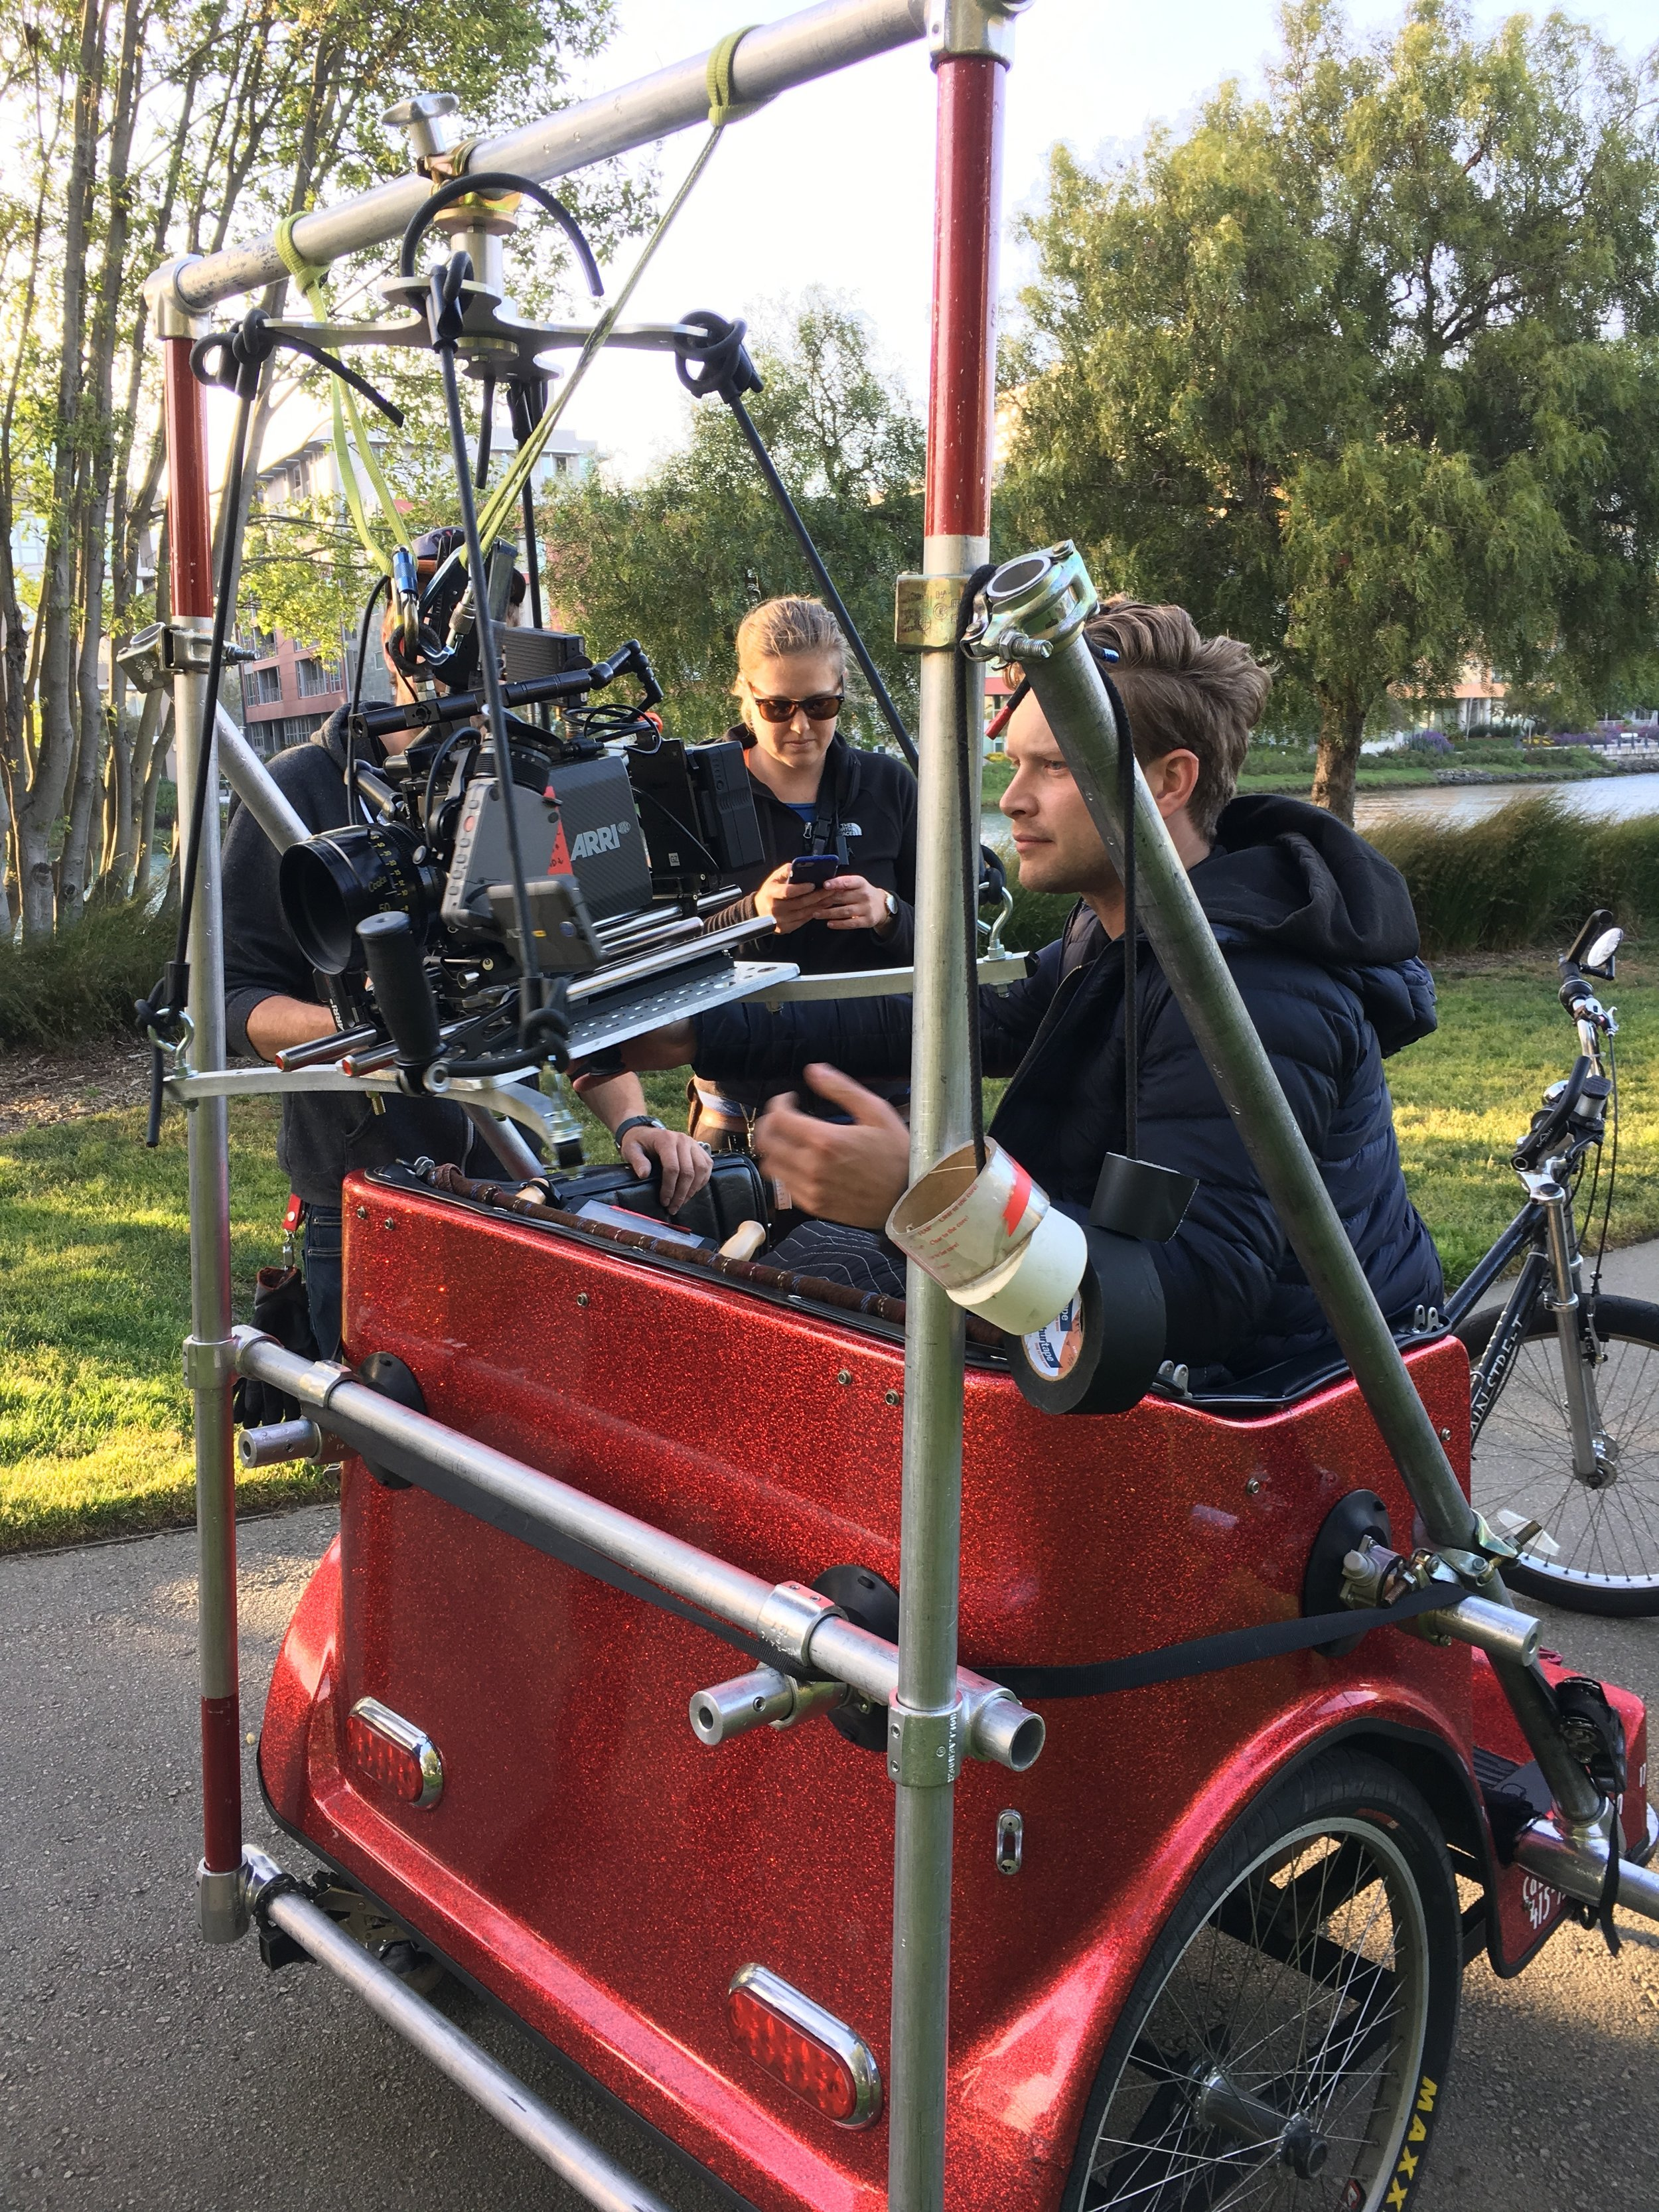 A camera-rigged pedicab in action, shooting a commercial in San Francisco's Mission Bay.